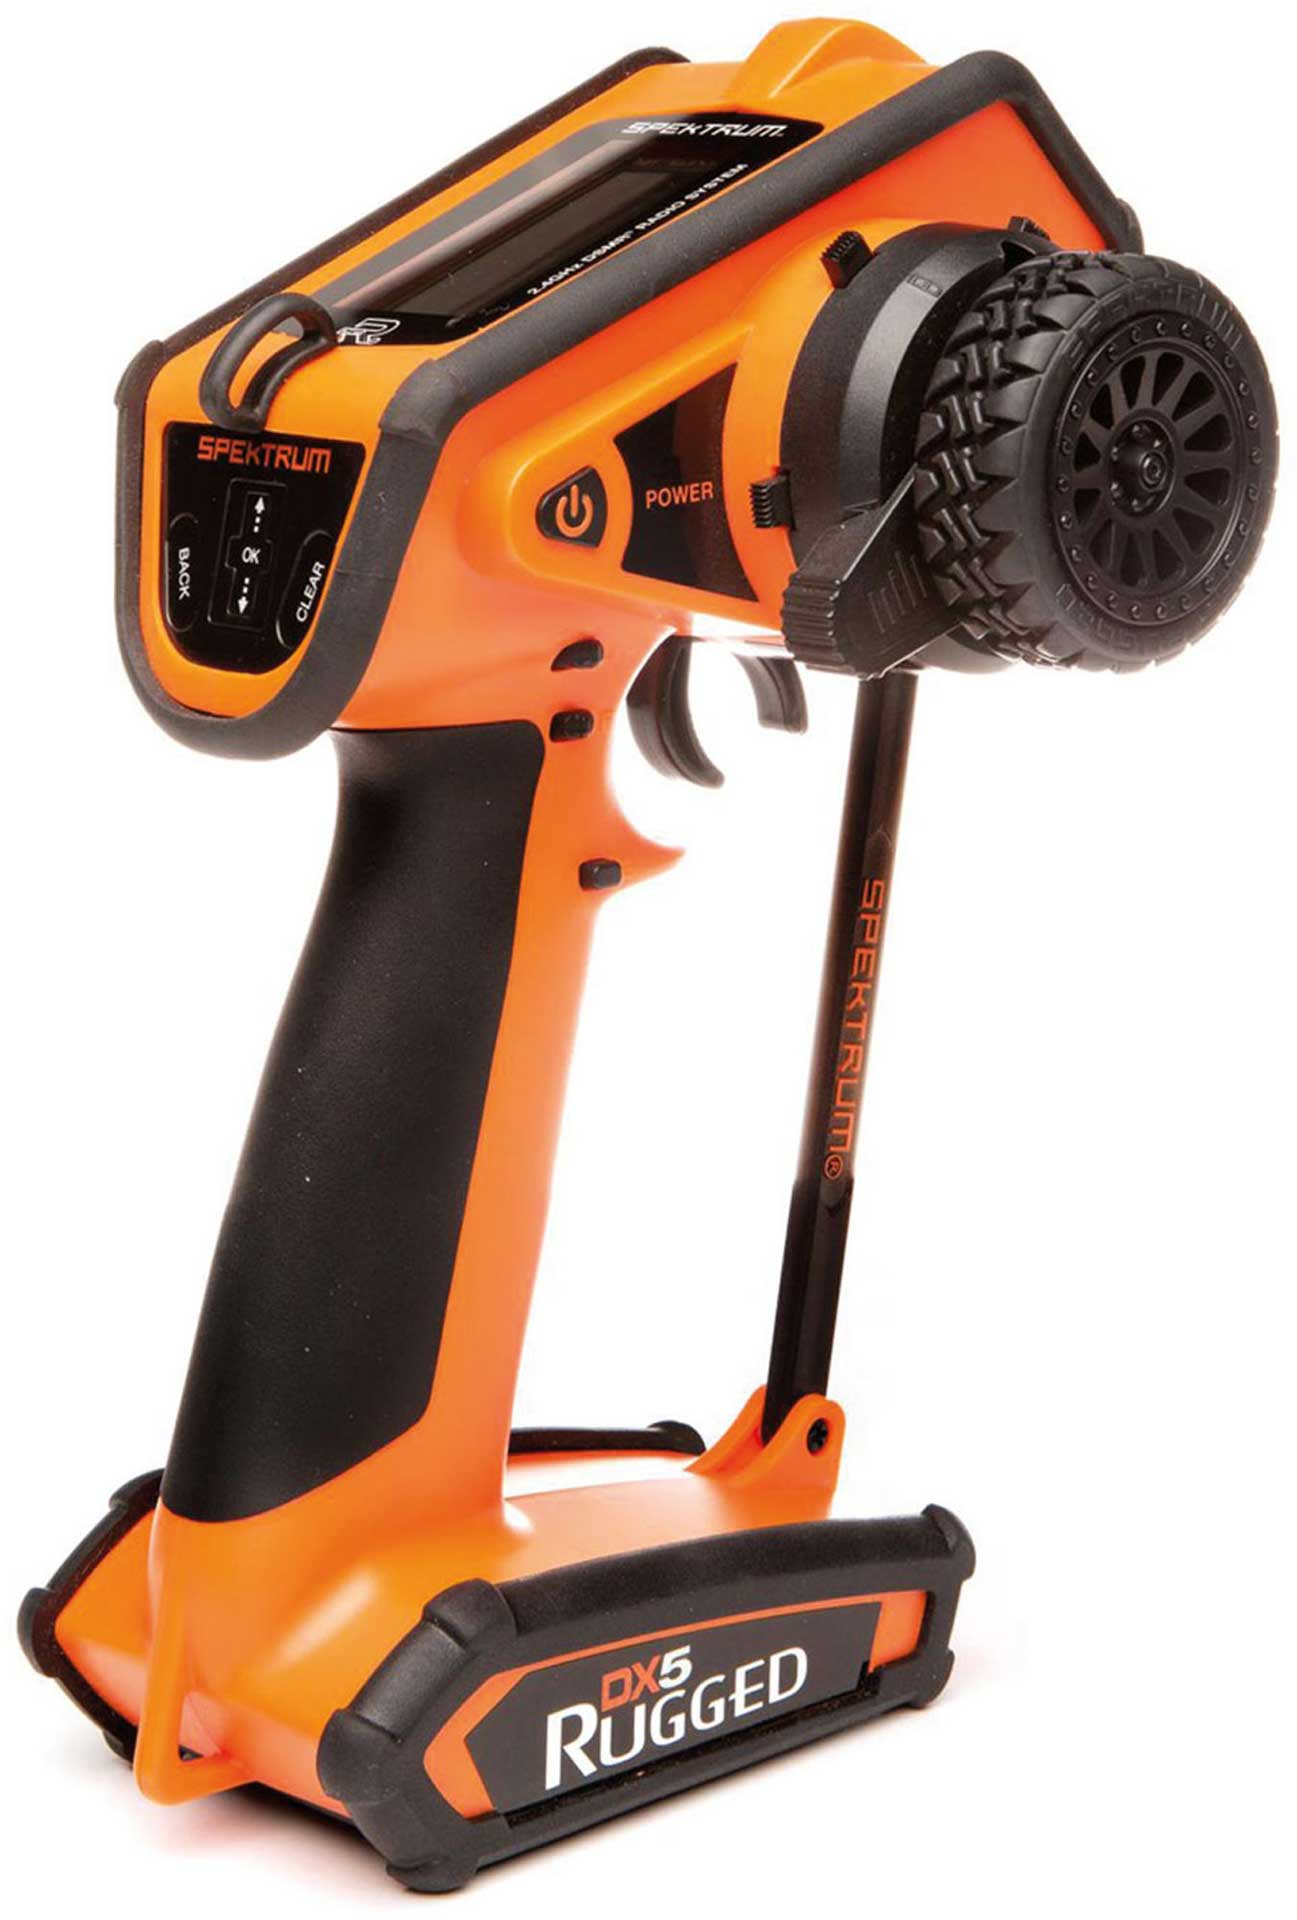 SPEKTRUM DX5 Rugged DSMR TX ONLY ORANGE *B-Goods* Special Edition